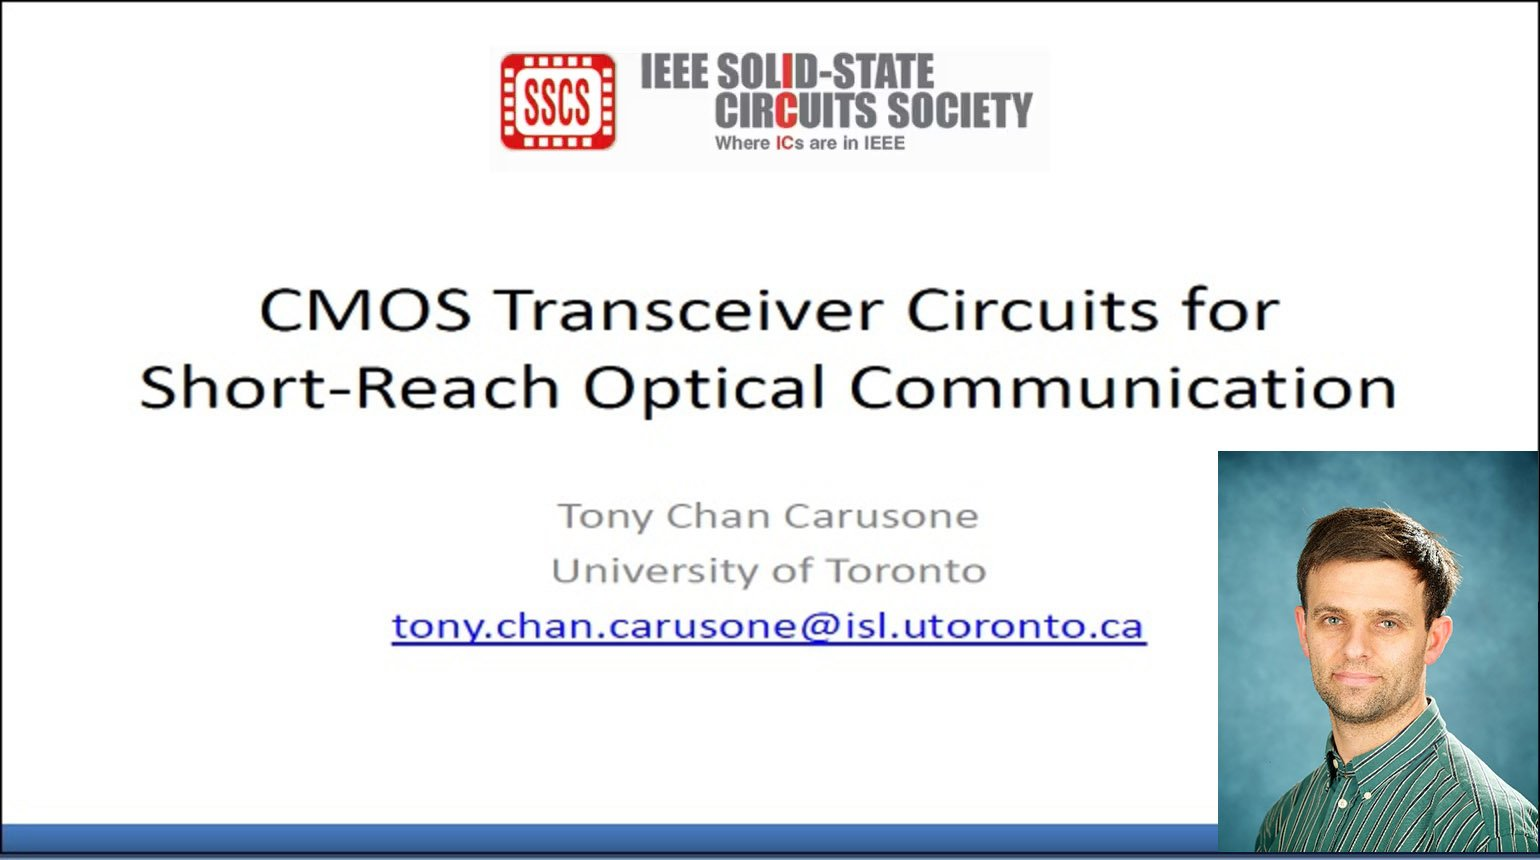 CMOS Transceiver Circuits for Short-Reach Optical Communication Video